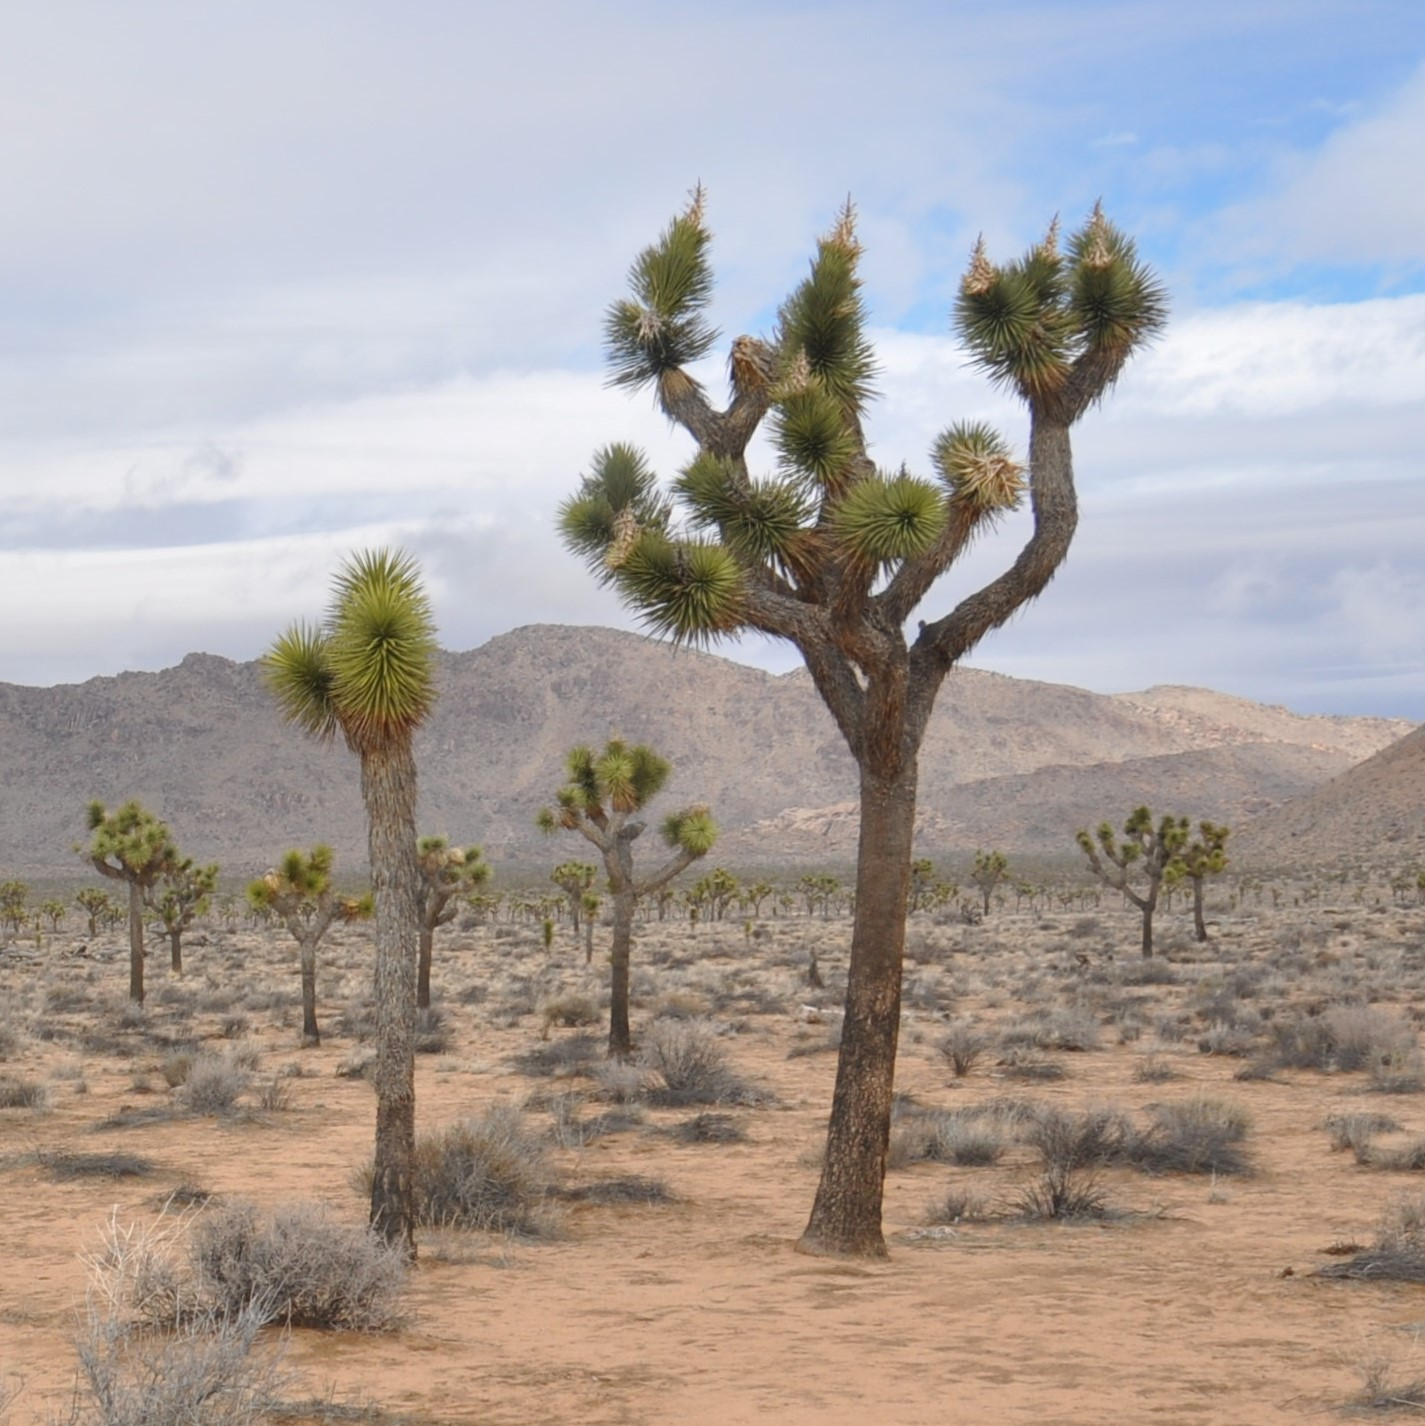 A stand of Joshua trees in the Joshua Tree National Park in California.